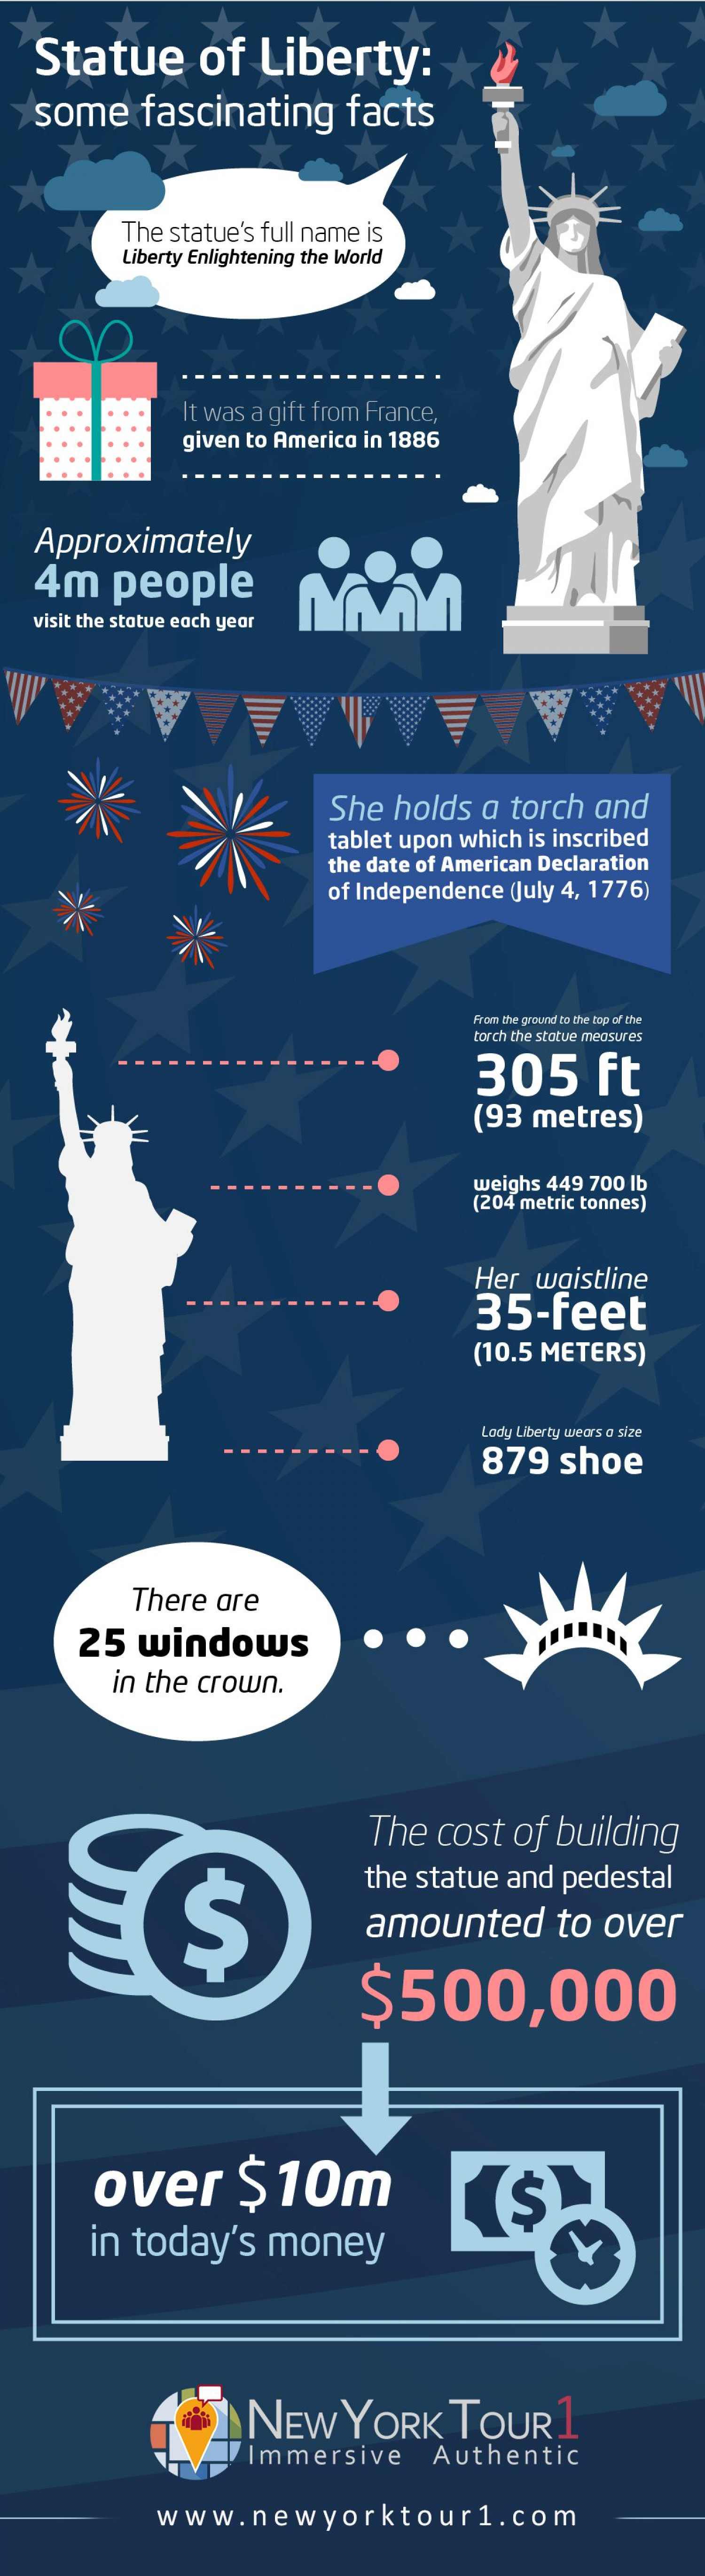 Statue Of Liberty Some Fascinating Facts